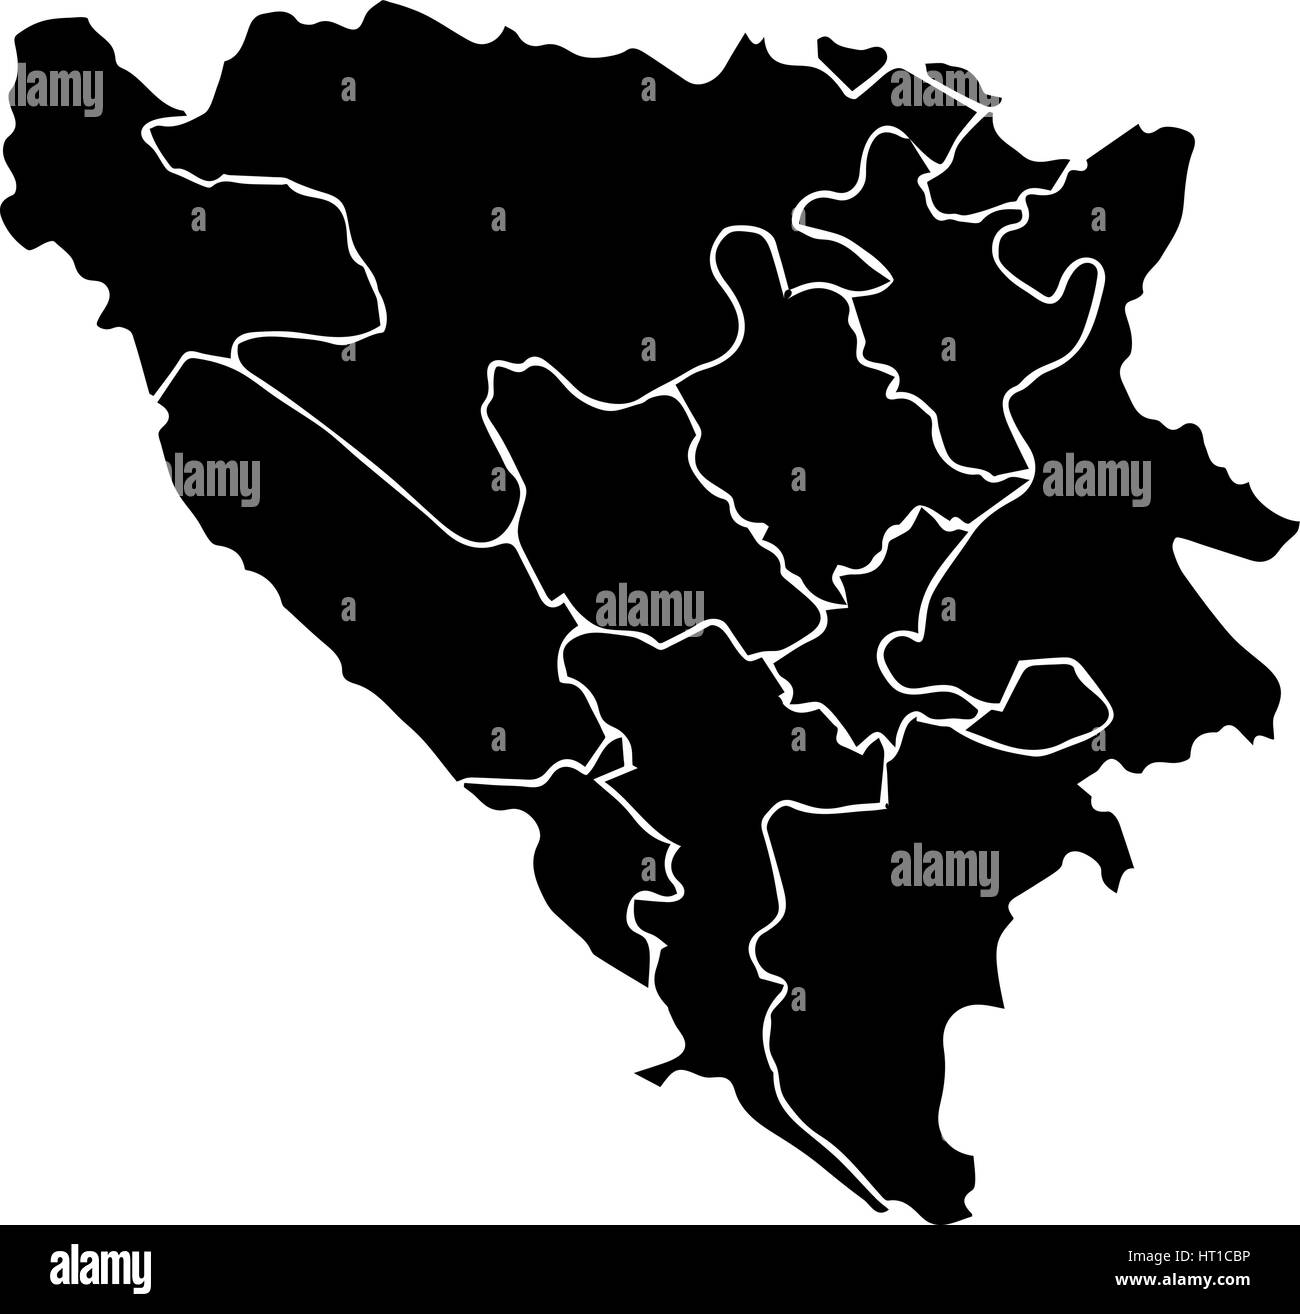 High detailed vector map with counties regions states - Bosnia Herzegovina - Stock Vector